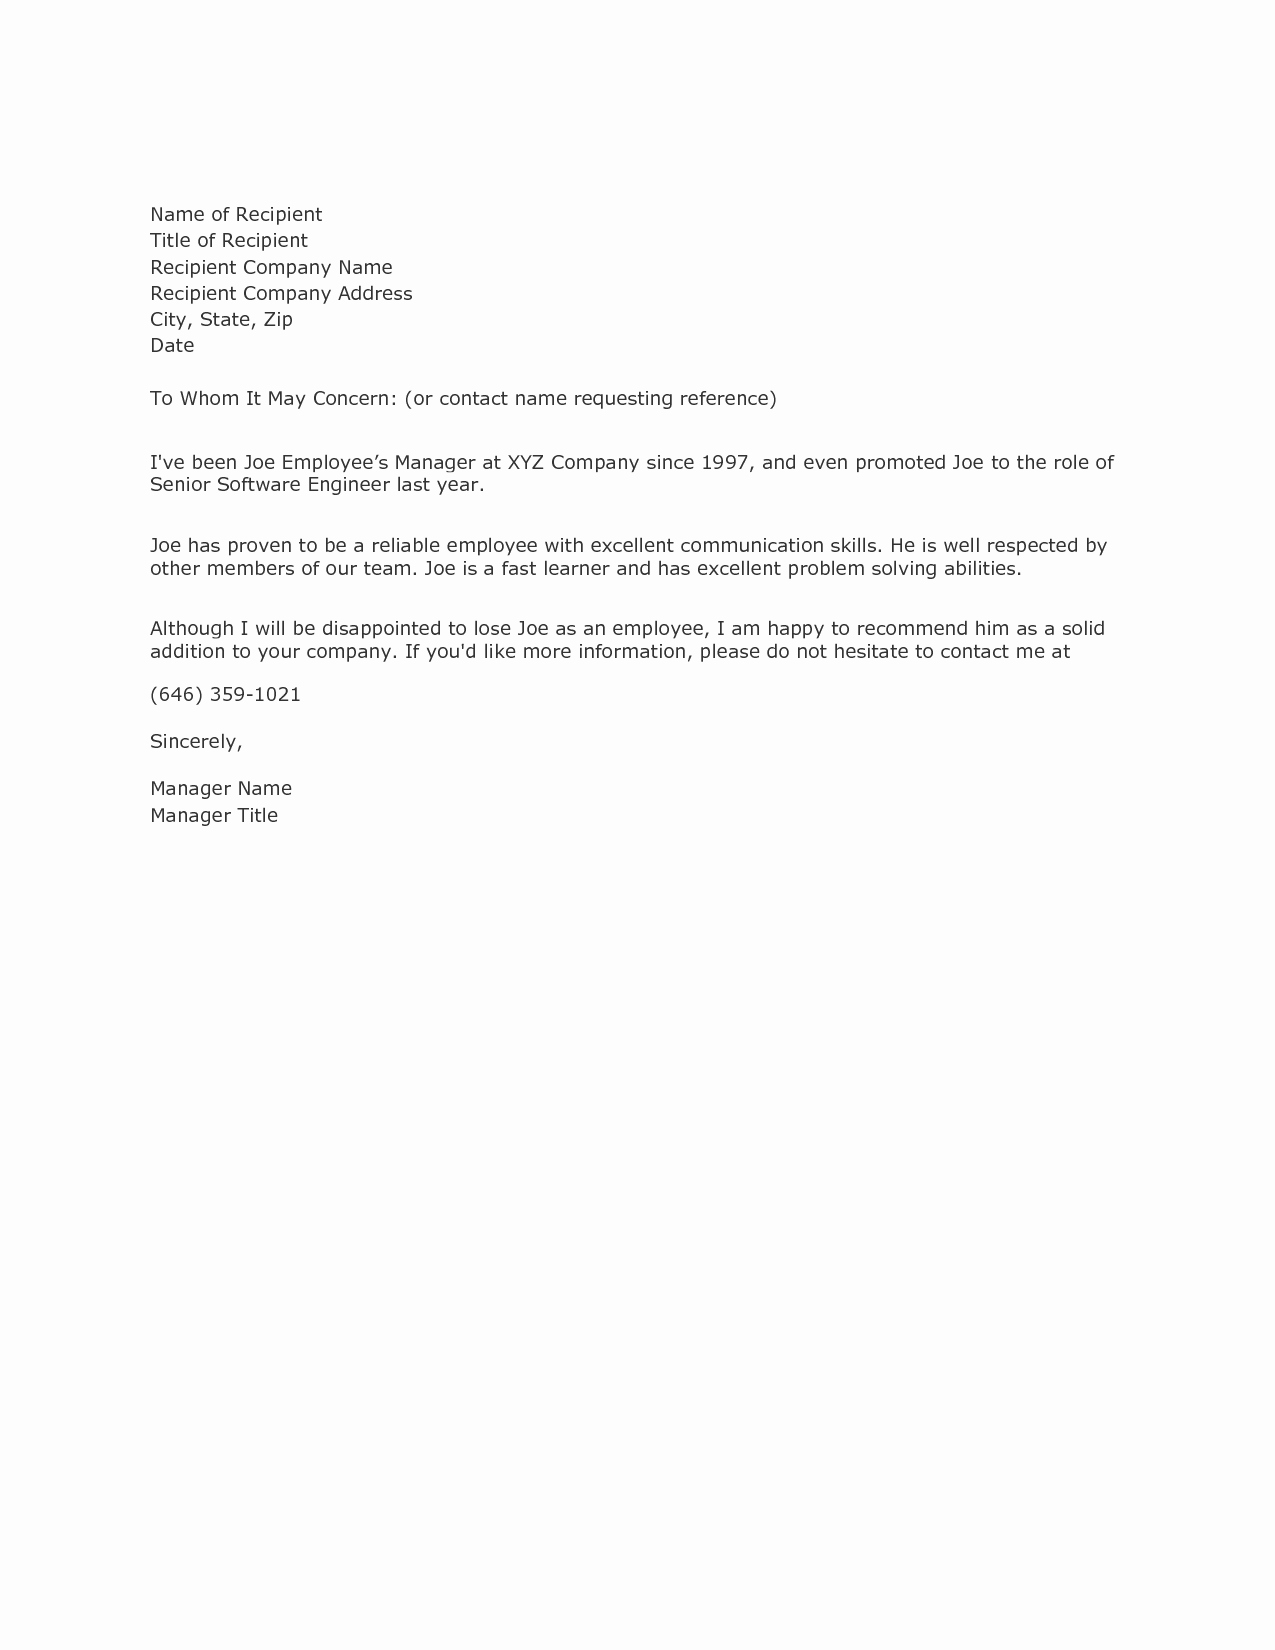 Request for Recommendation Letter Sample Best Of Example Reference Letterexamples Of Reference Letters